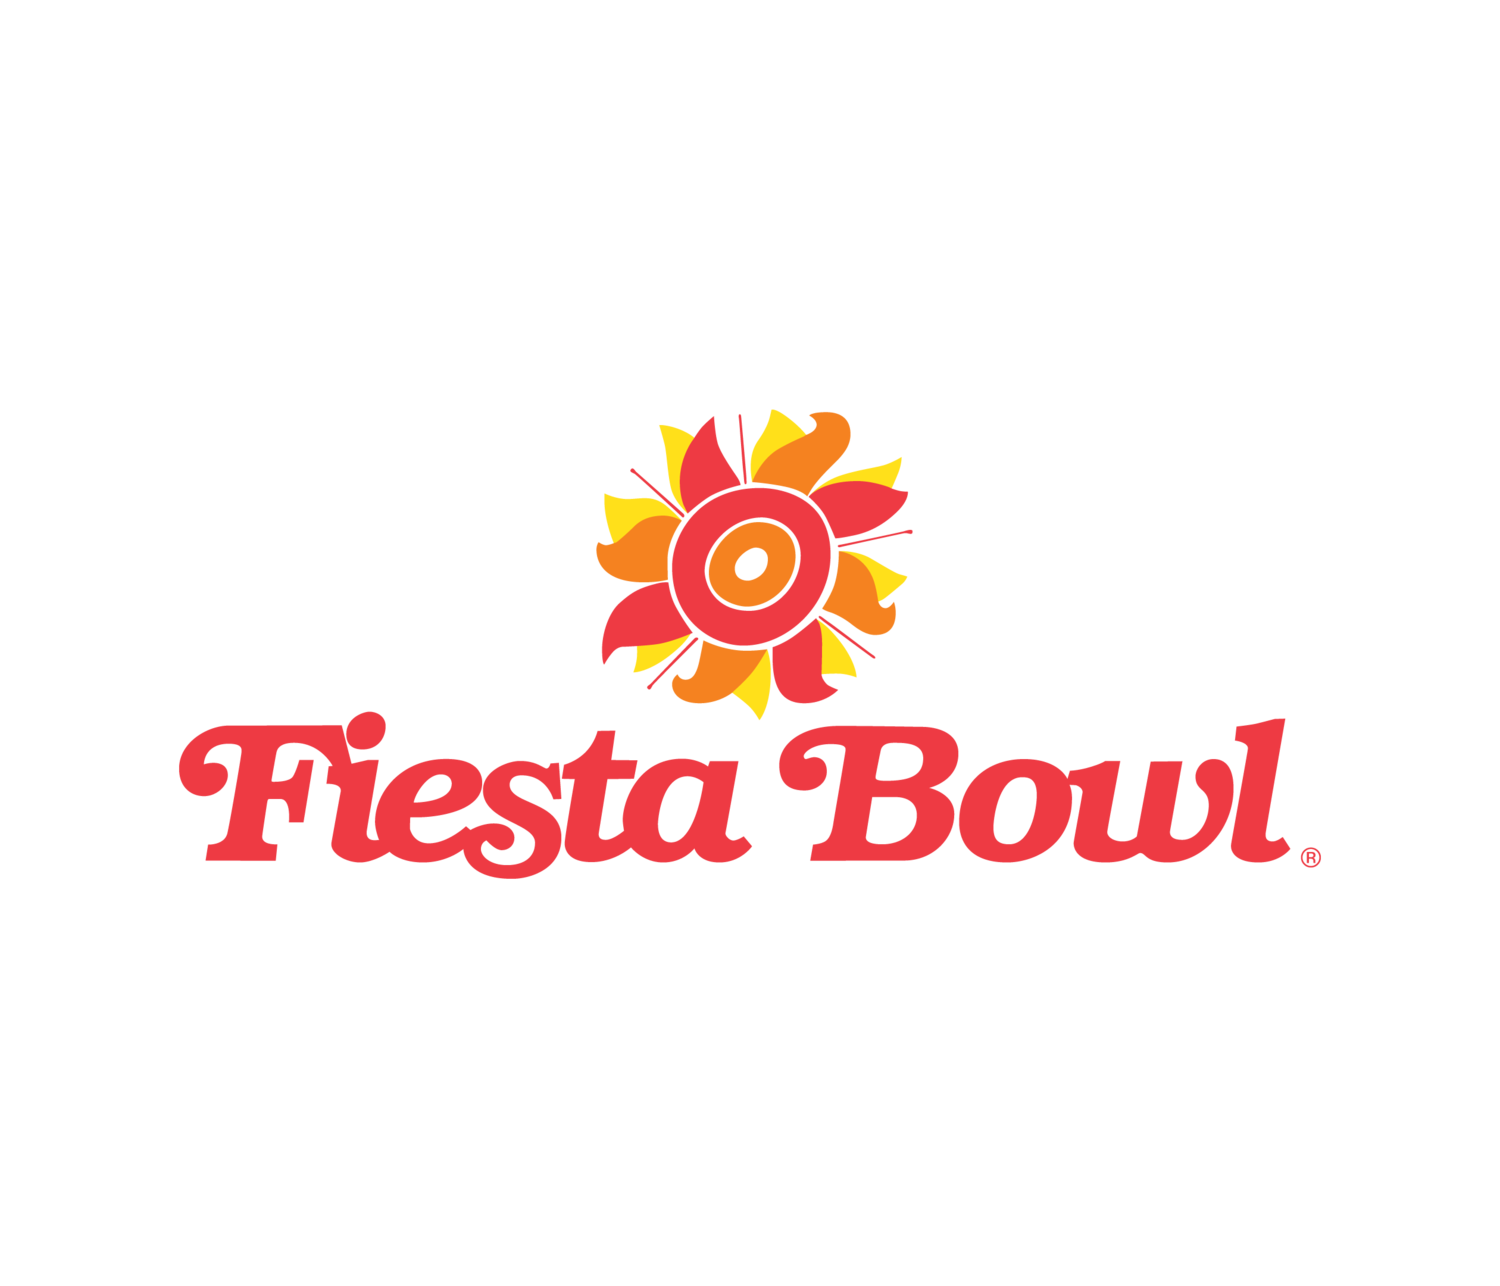 Fiesta Bowl Association Re-engages Impression Sports